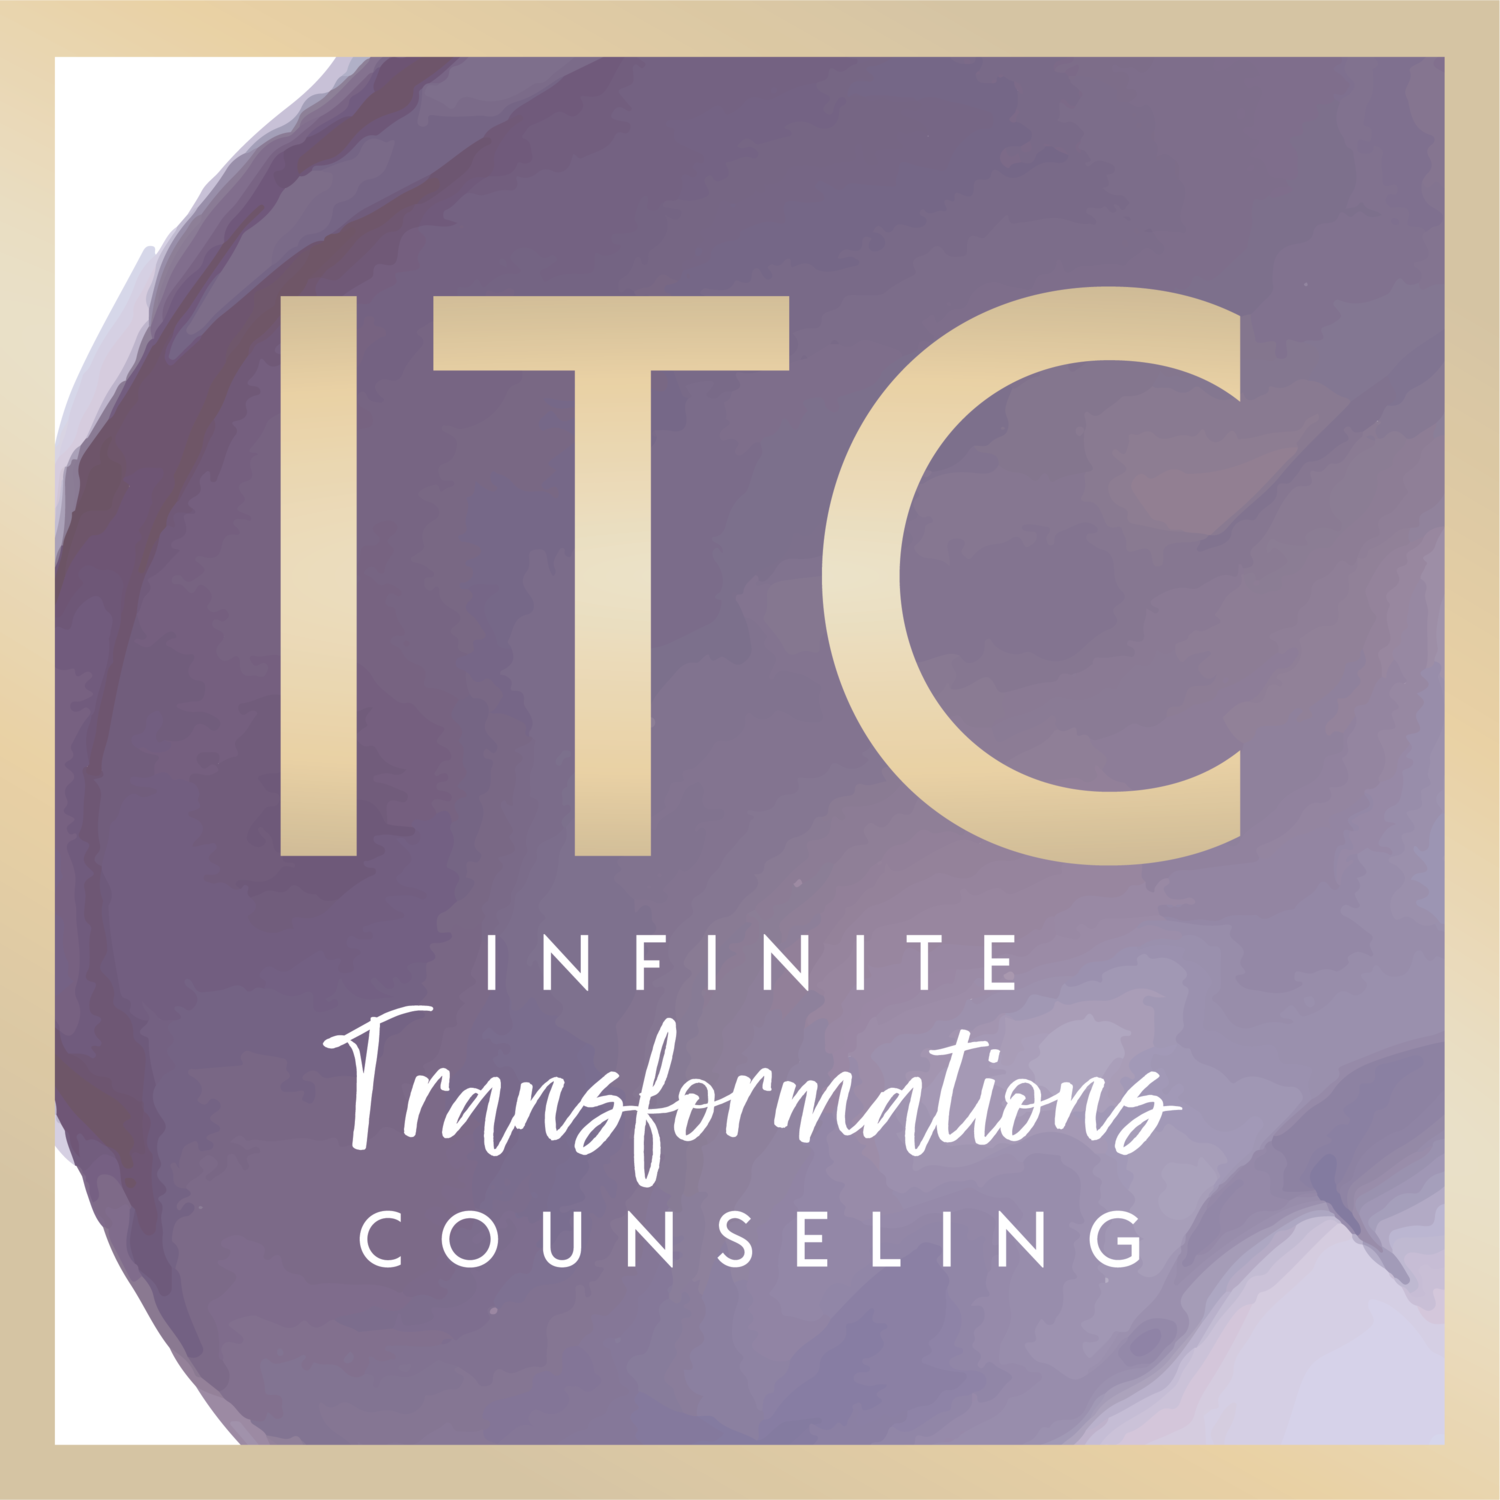 Infinite Transformations Counseling